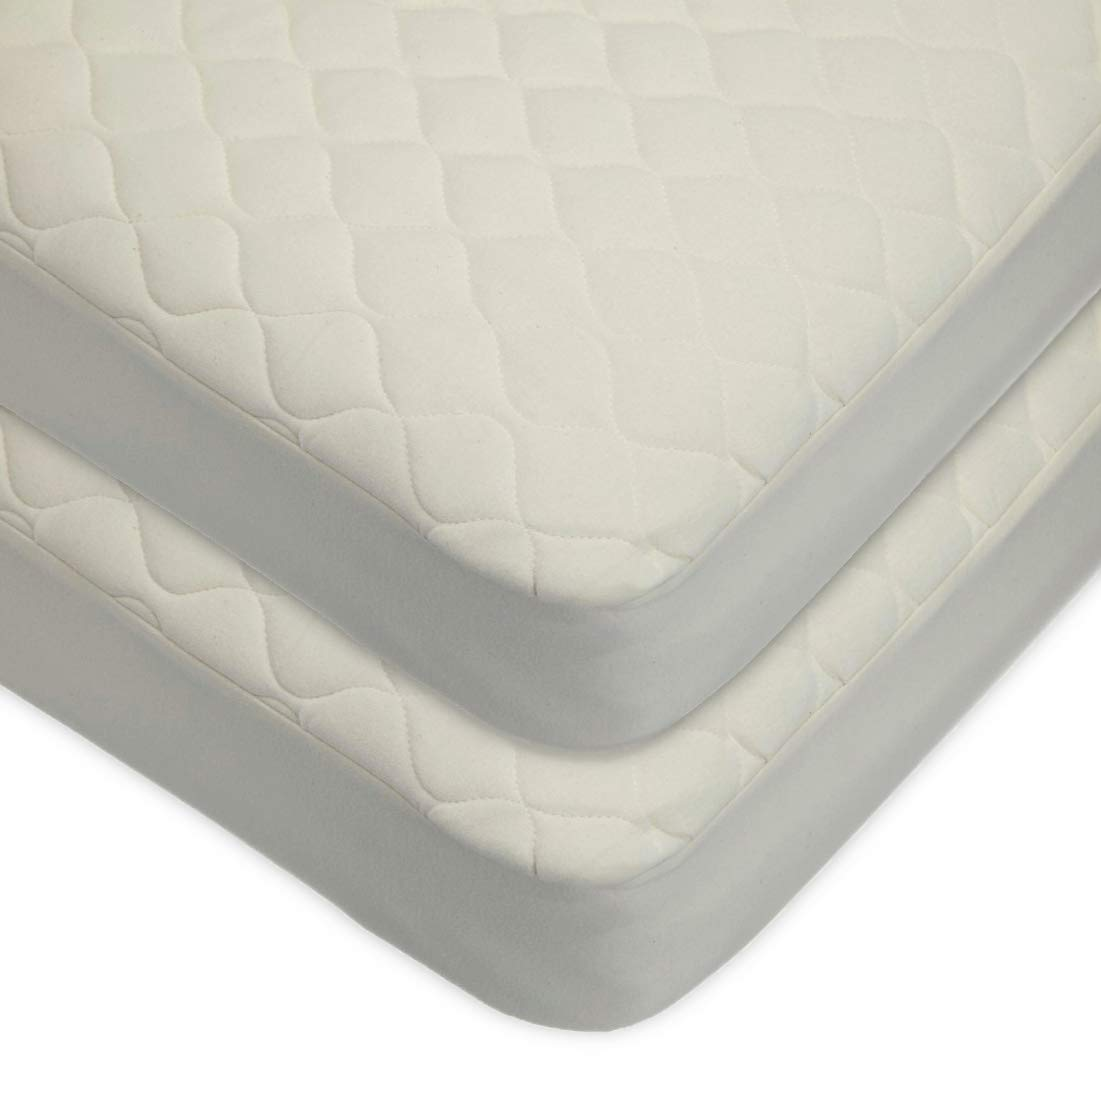 American Baby Company Natural Waterproof Quilted Multi-Use Pad Made with Organic Cotton